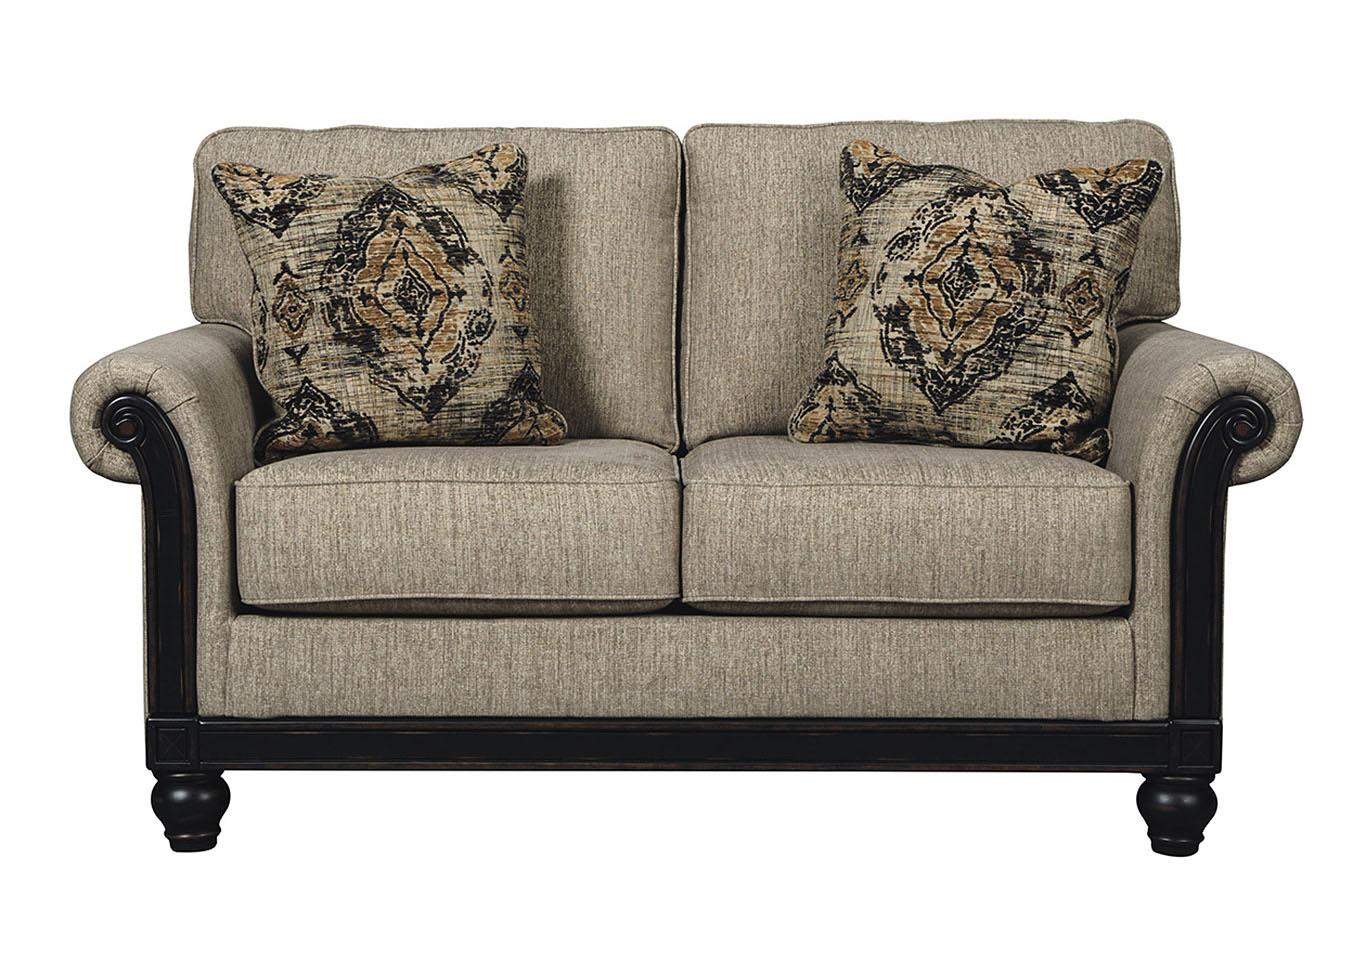 Compass Furniture Blackwood Taupe Loveseat